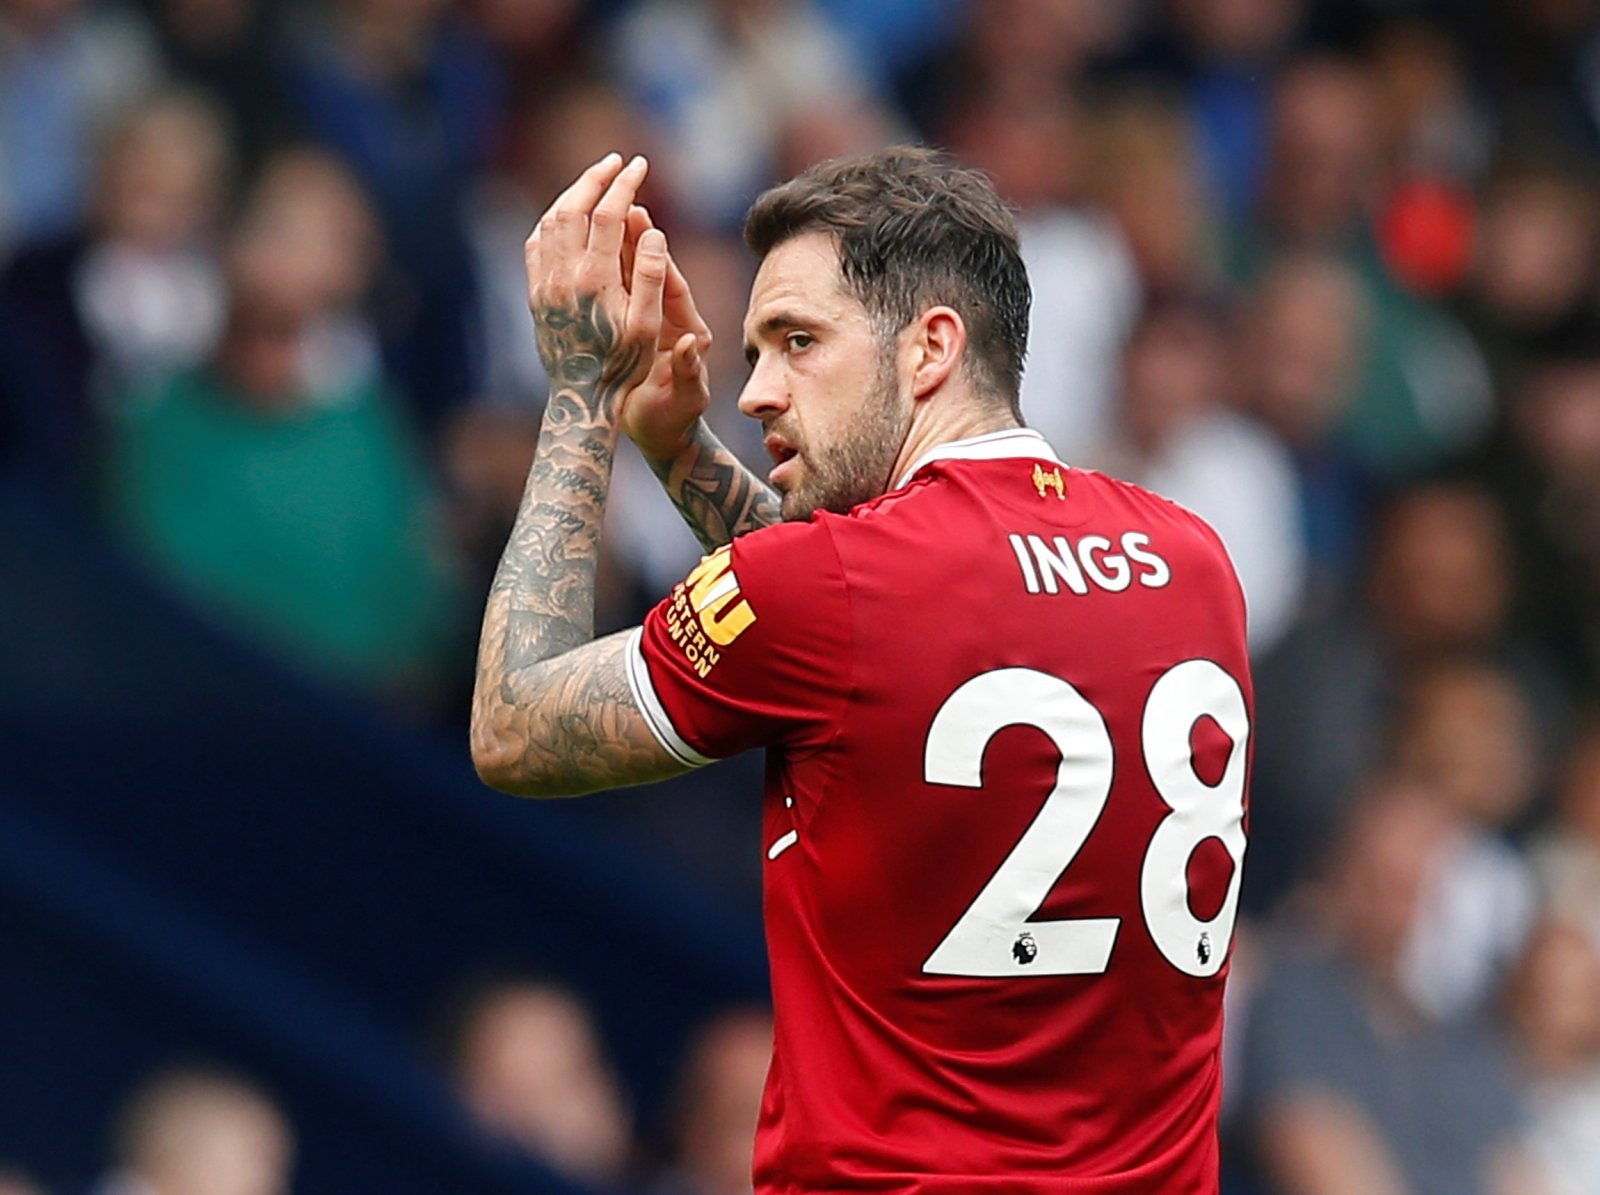 Mark Hughes is right to throw Danny Ings straight into action this weekend